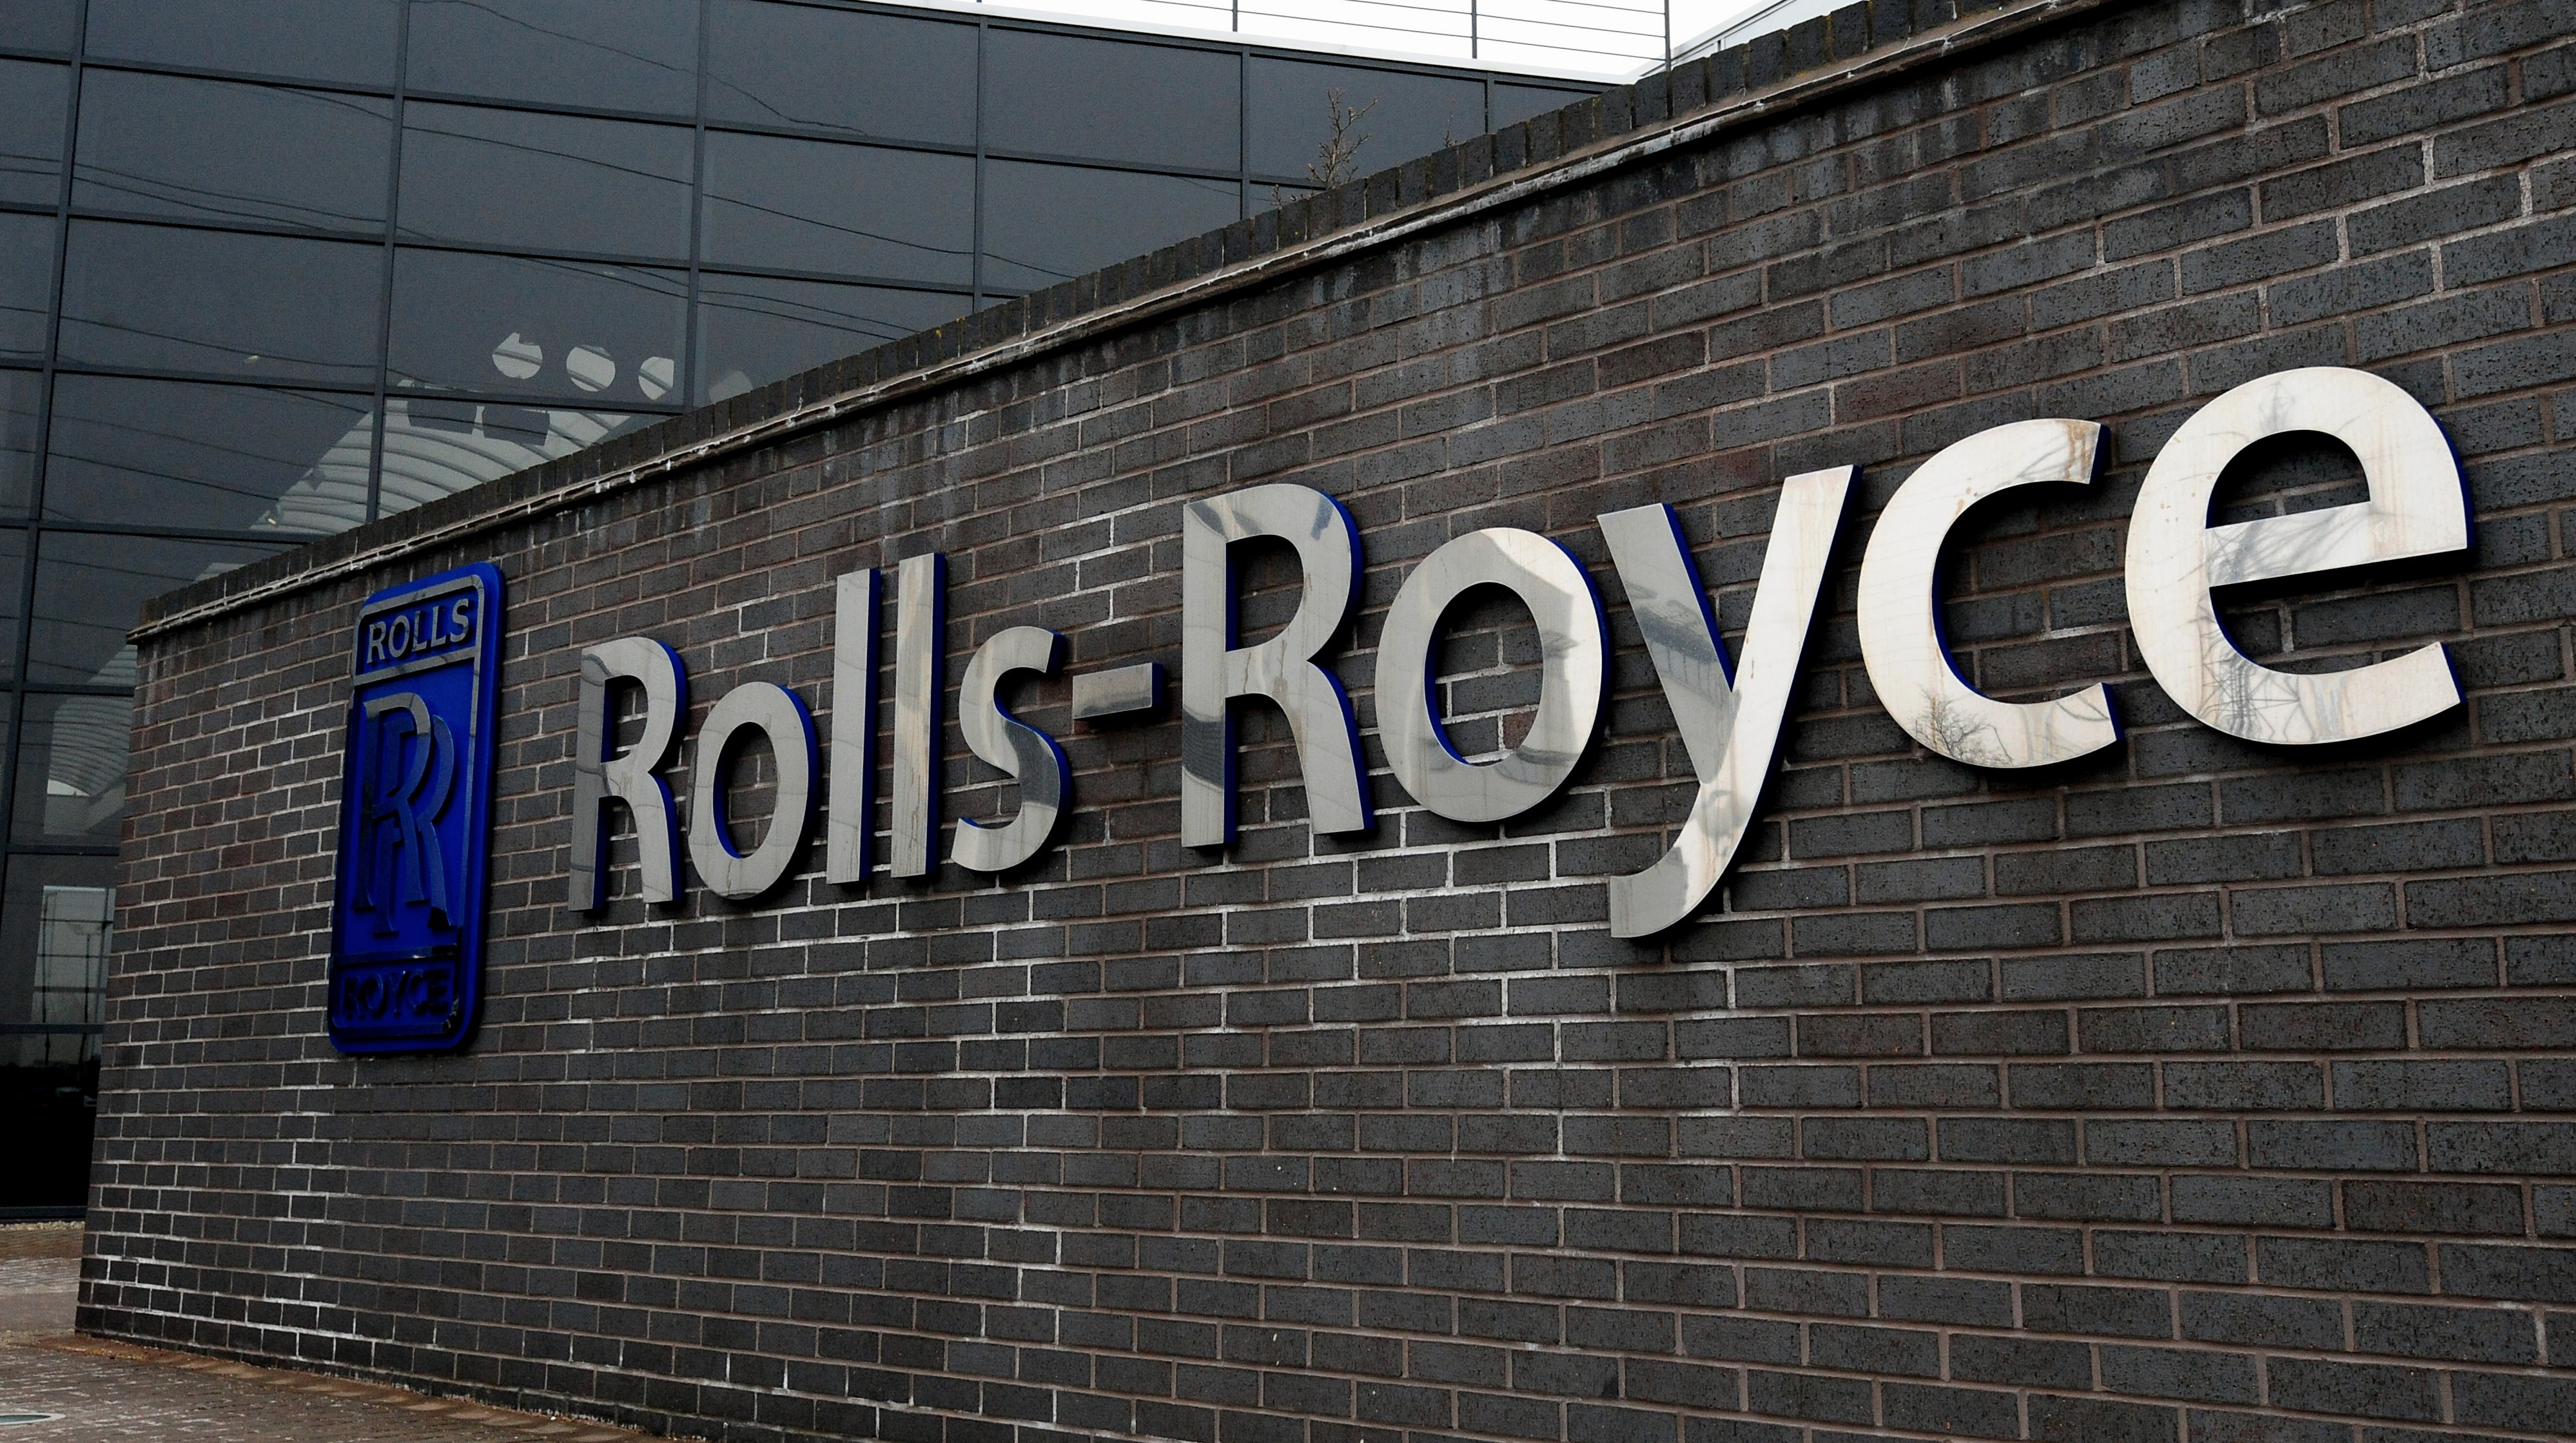 rolls royce confirms 350 new jobs in derby central itv news. Black Bedroom Furniture Sets. Home Design Ideas